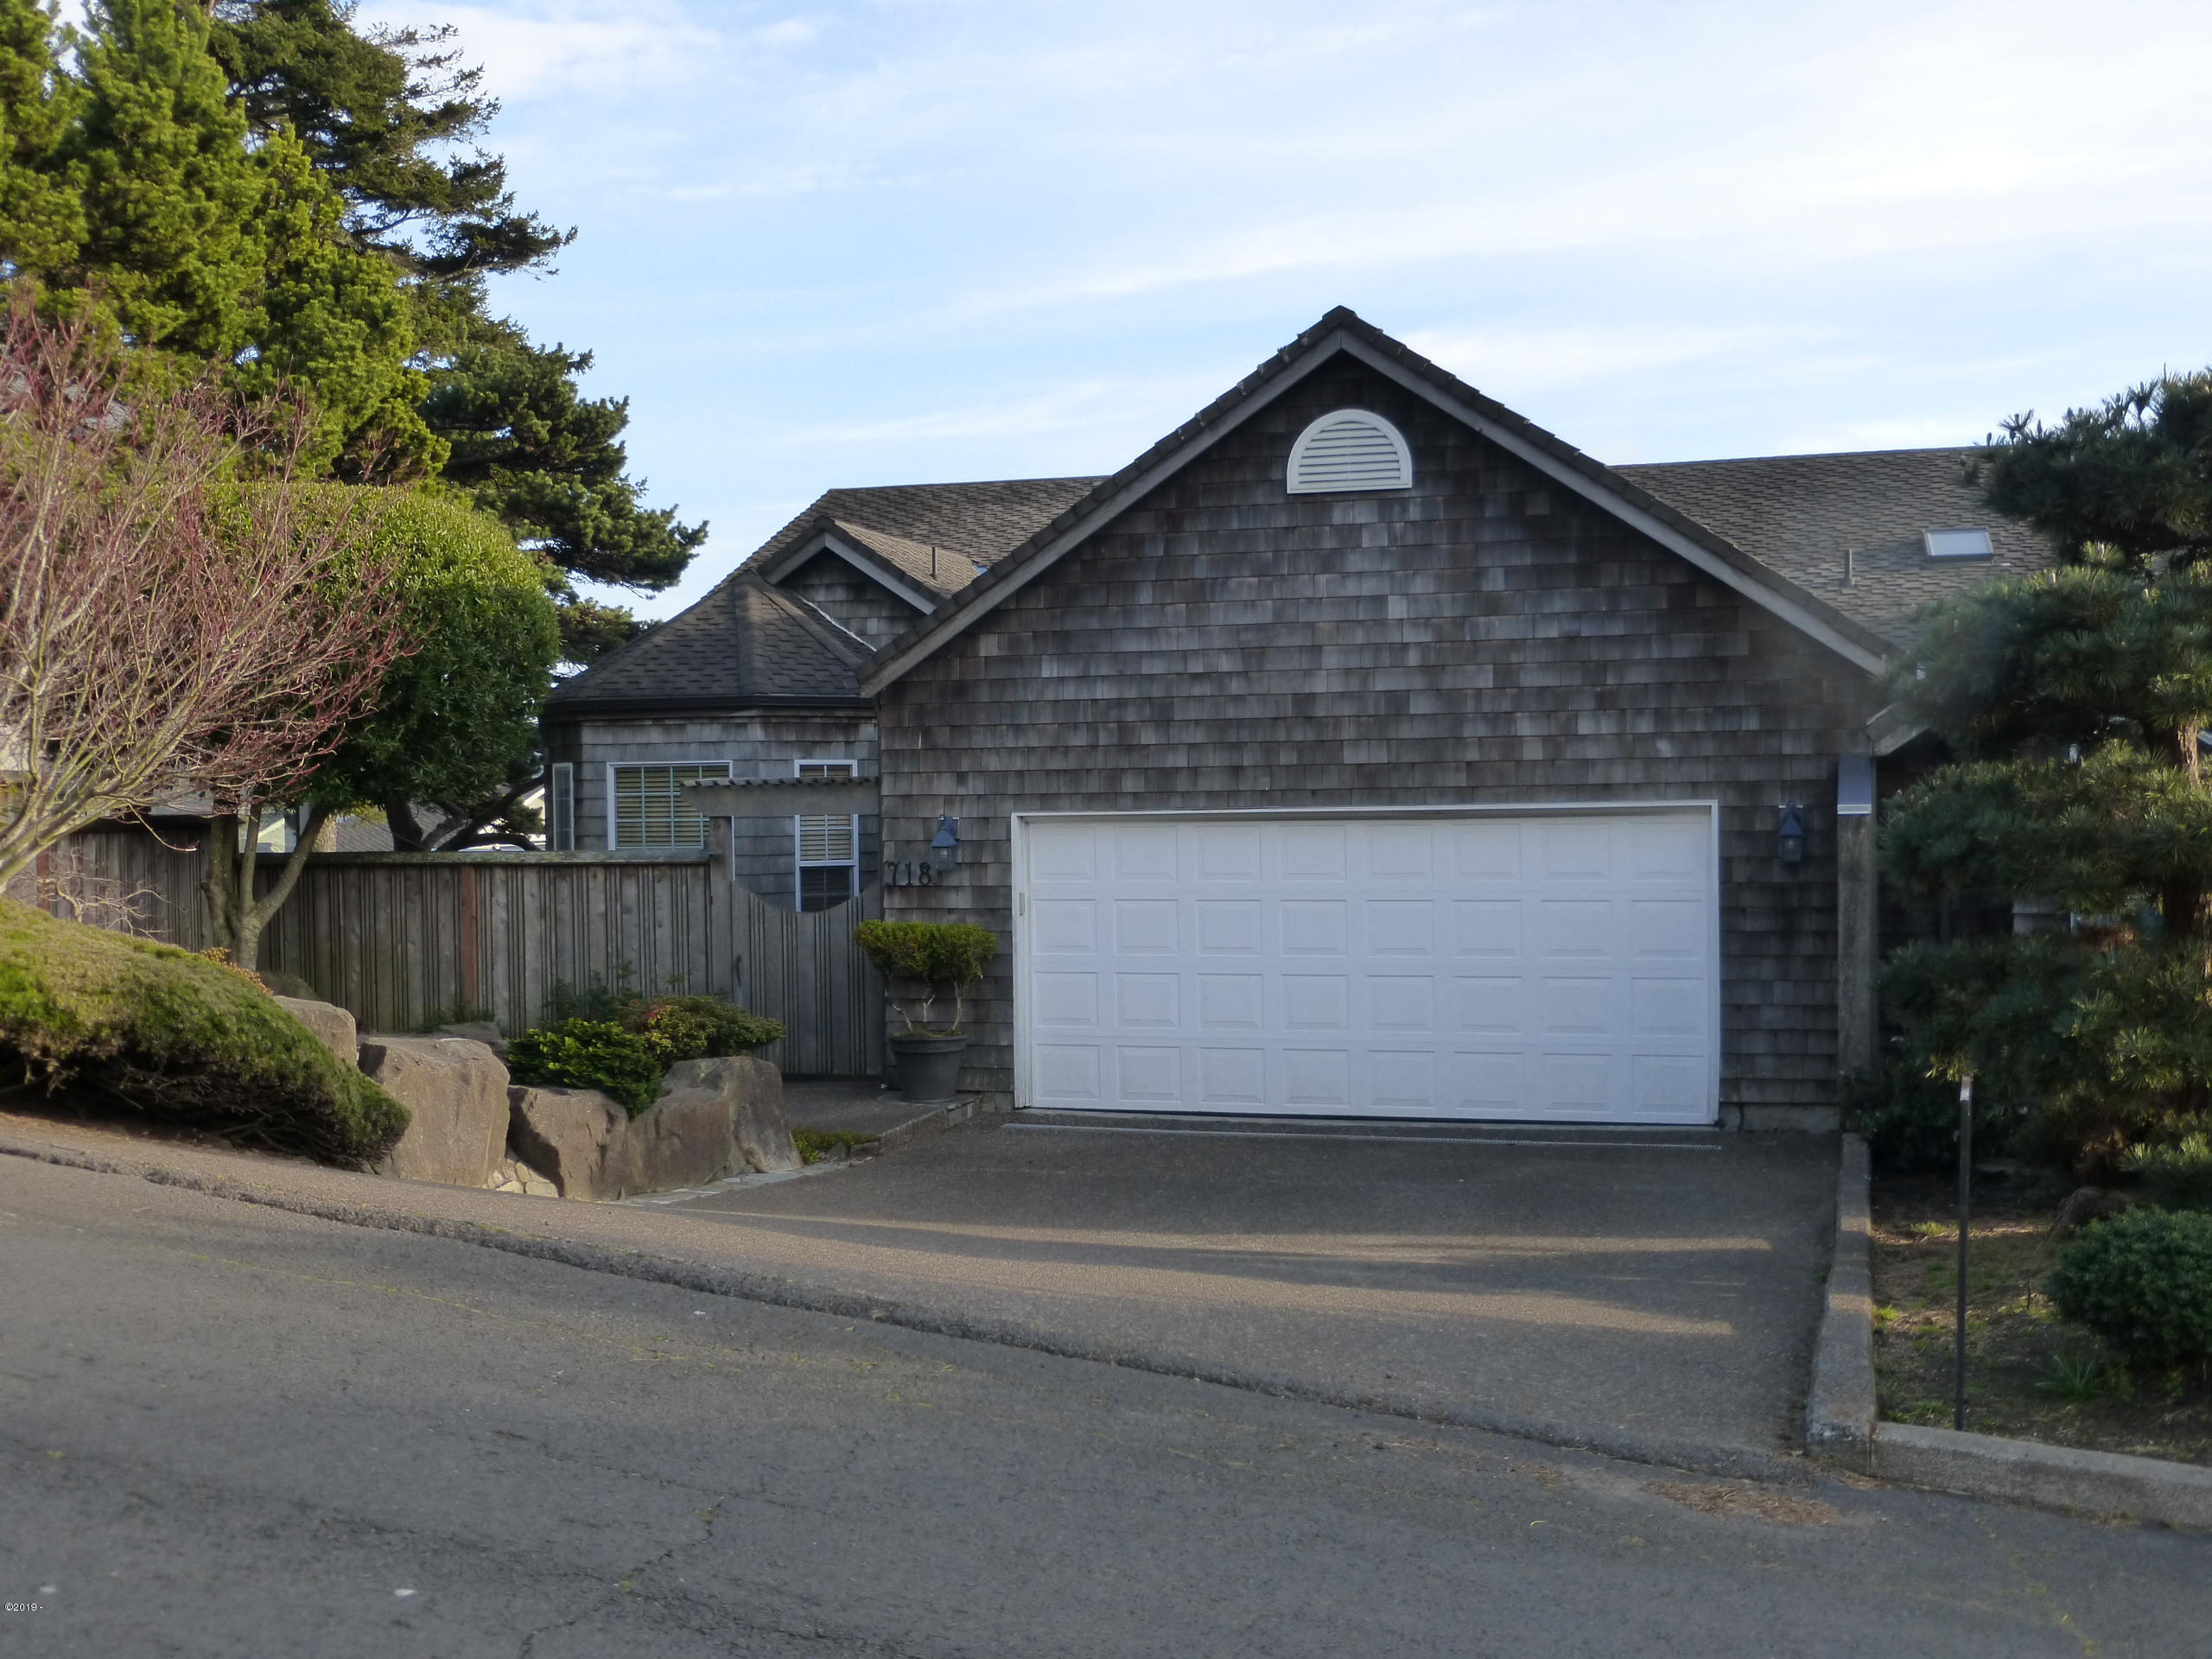 718 SE 5th St, Newport, OR 97365 - From the street